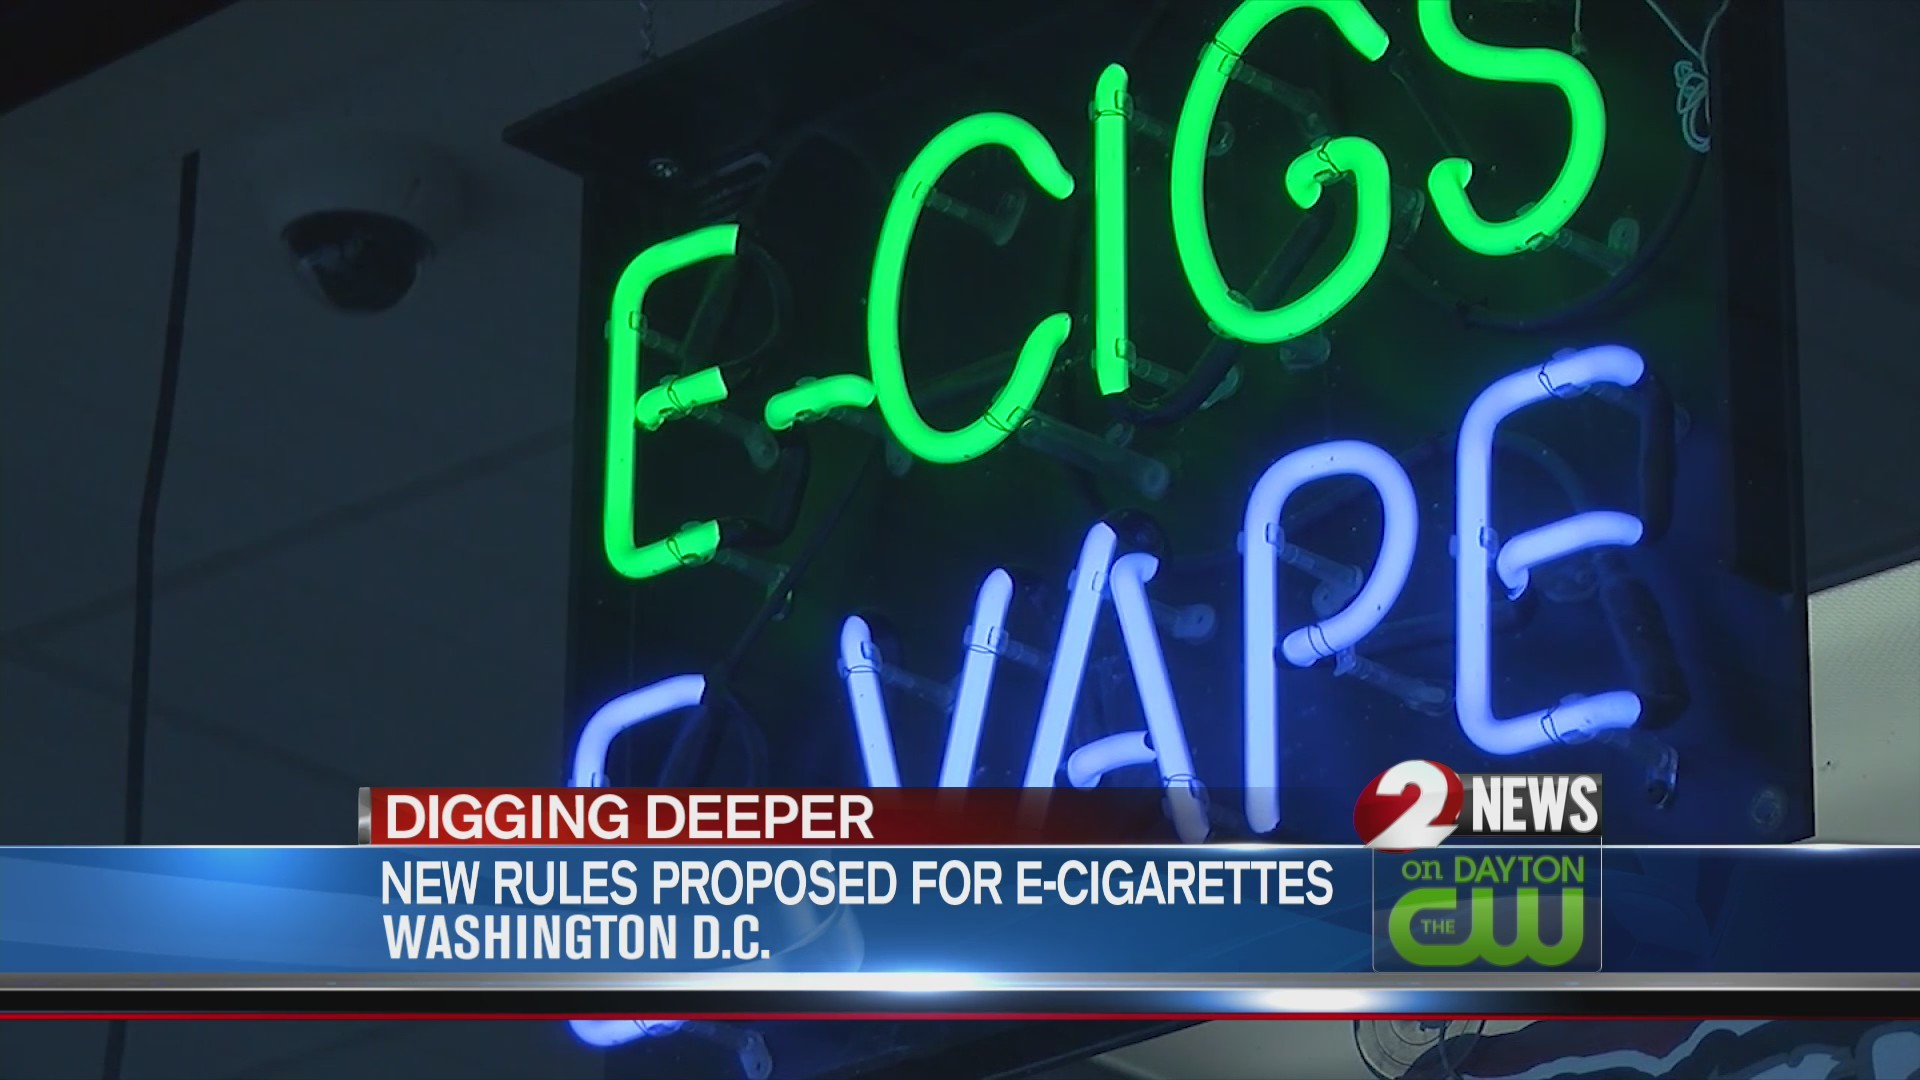 New rules proposed for e-cigarettes